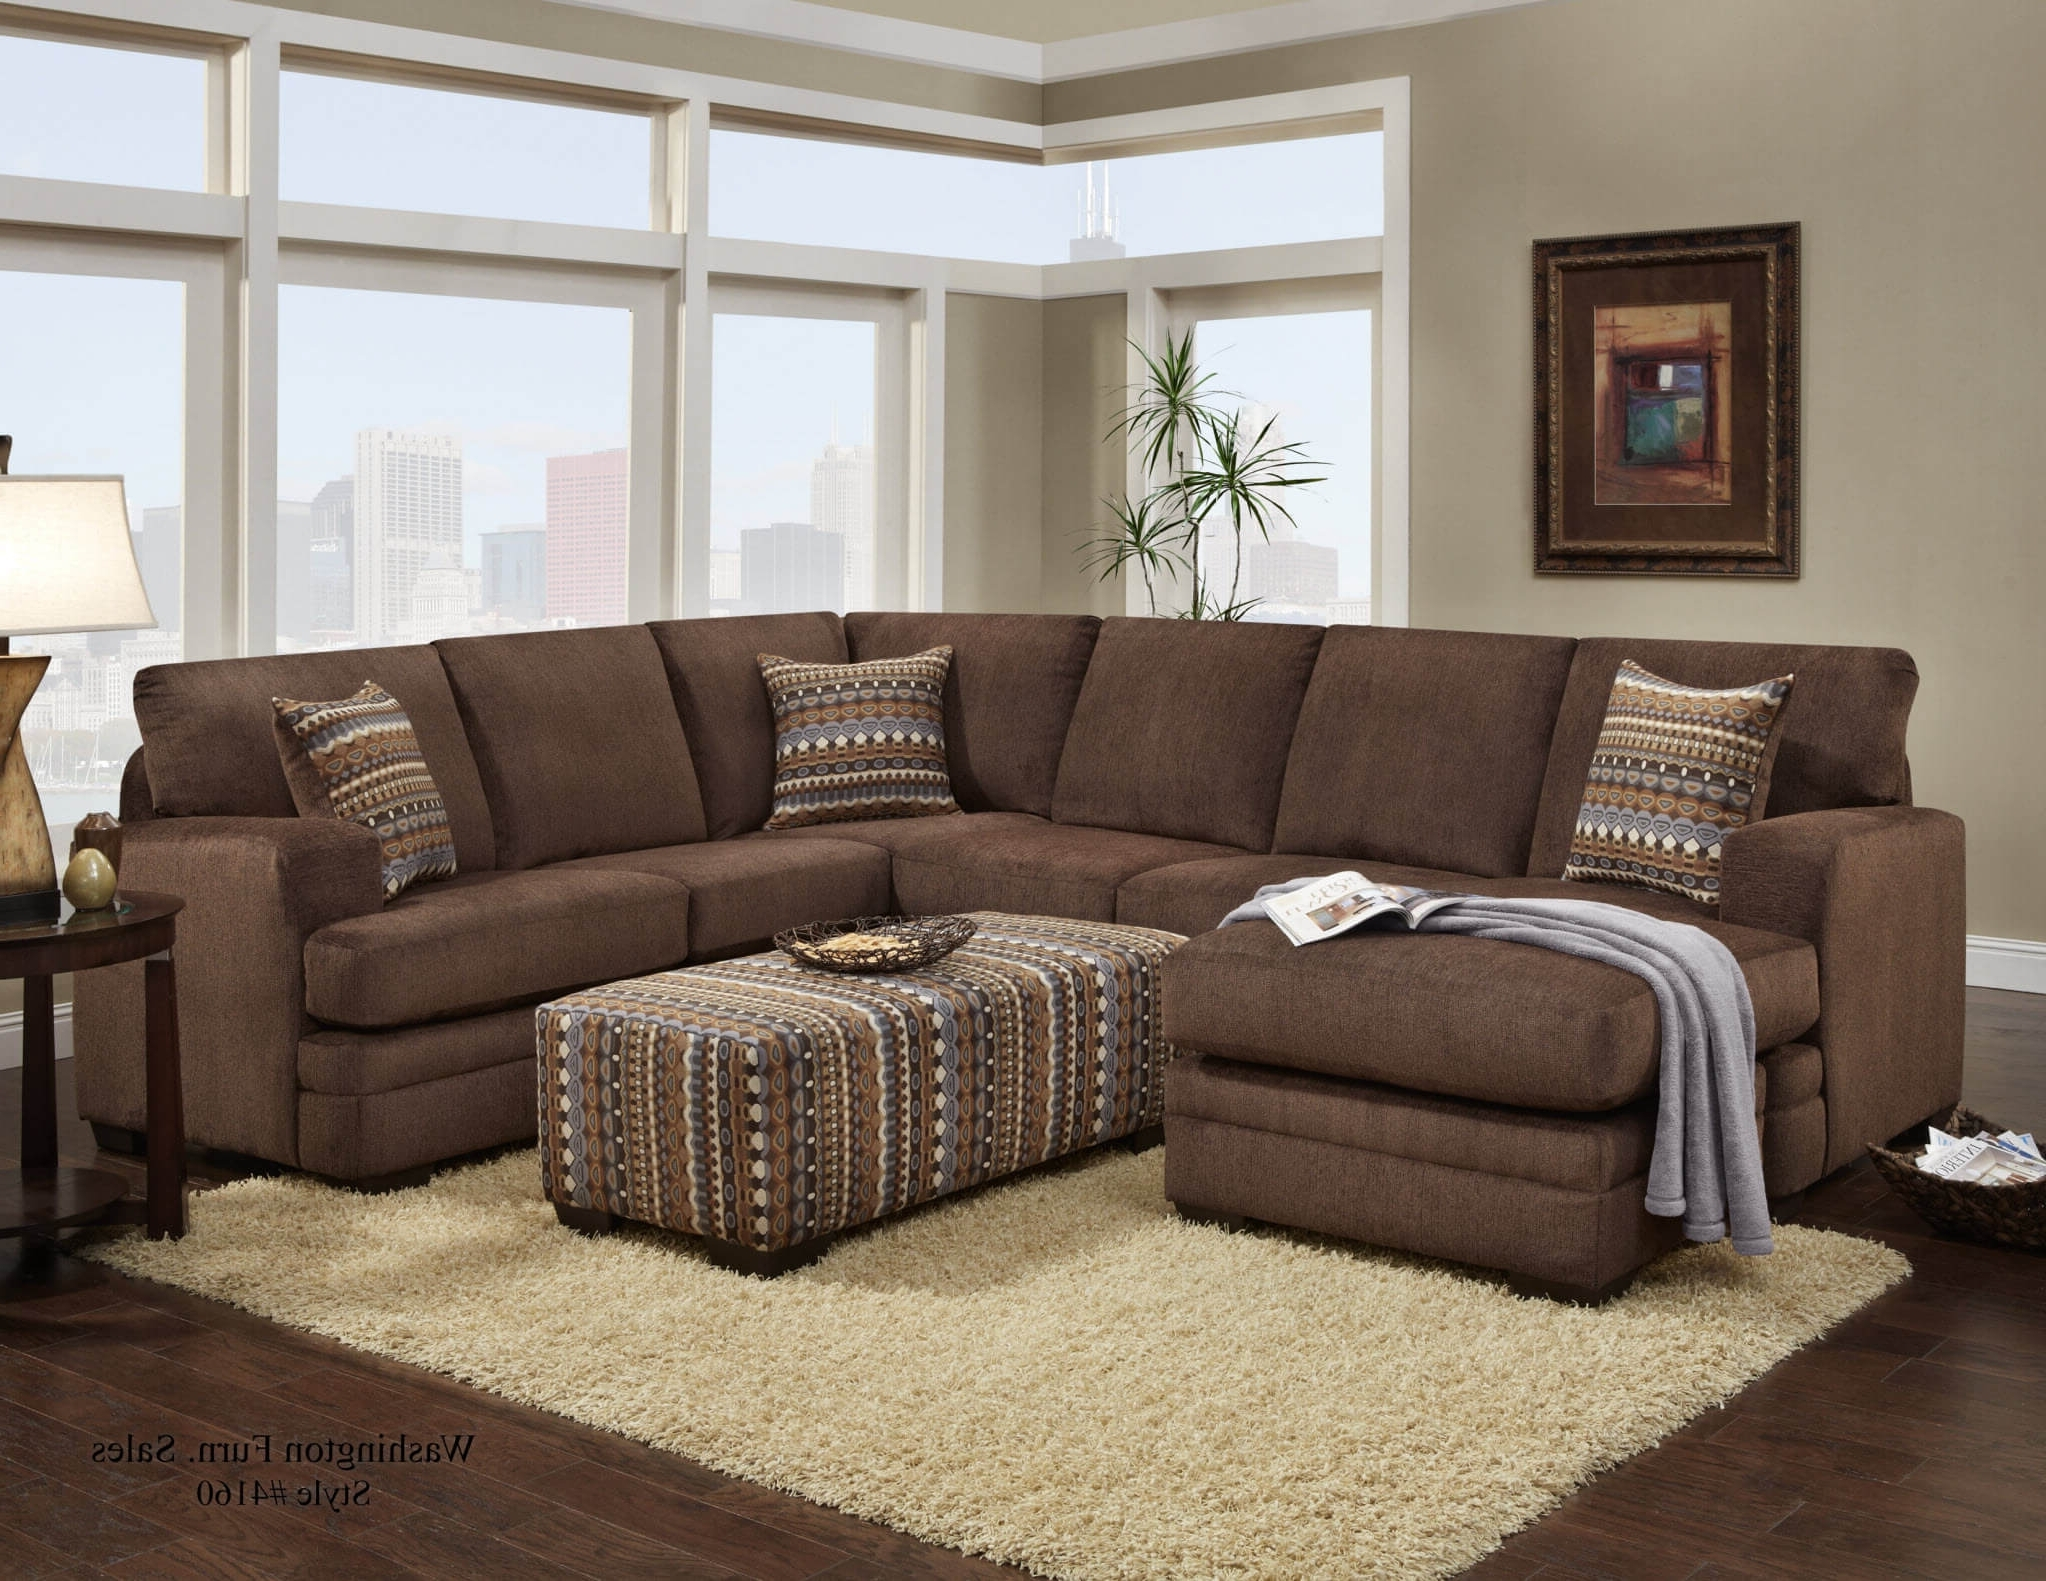 Sectional Sofa Sets In Most Recent Chocolate Sectional Sofas (View 11 of 15)